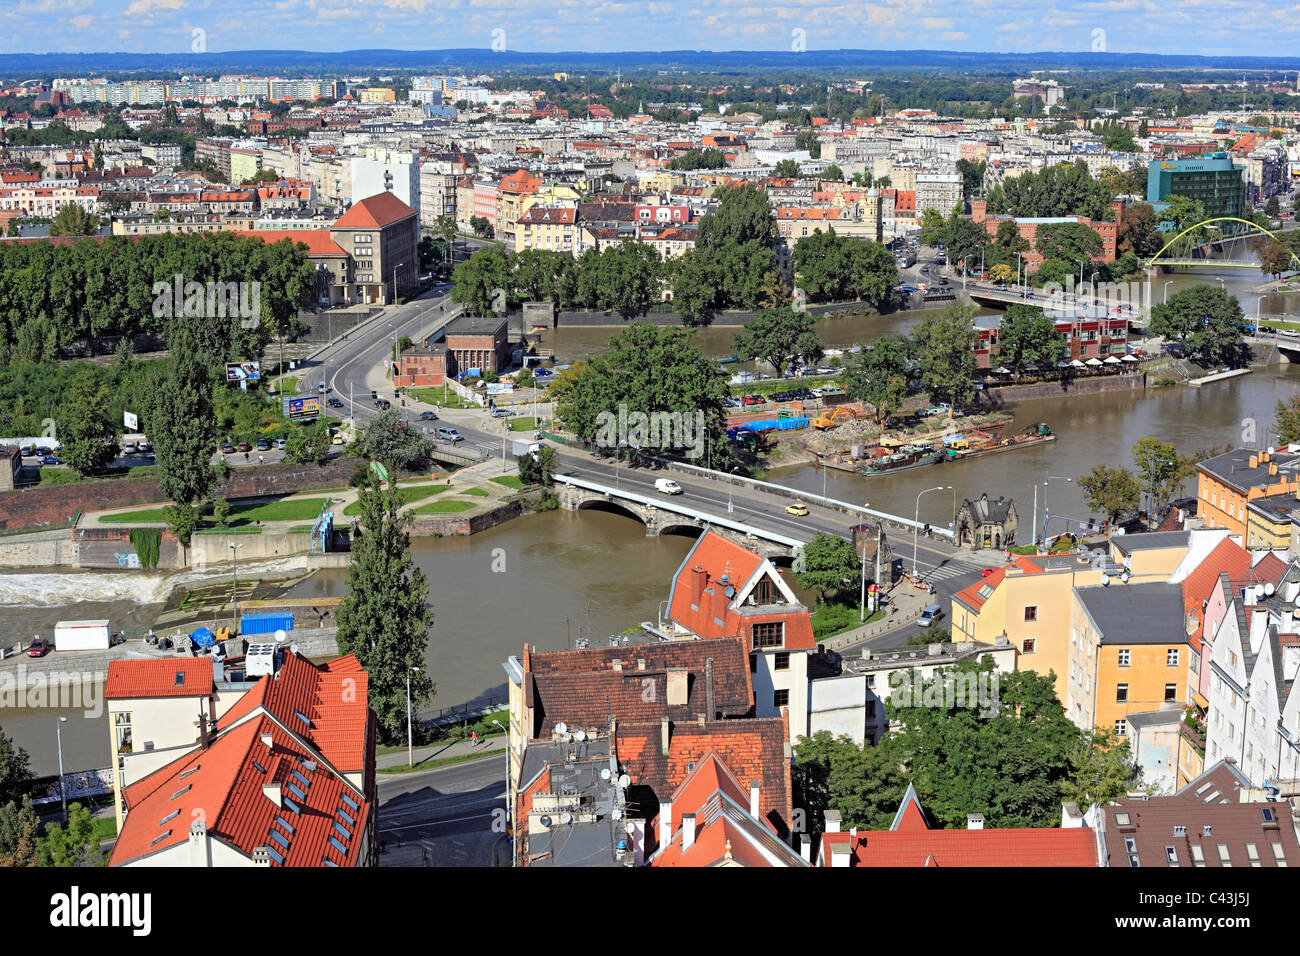 Poland polish eastern europe central europe europe for Architecture firms in europe